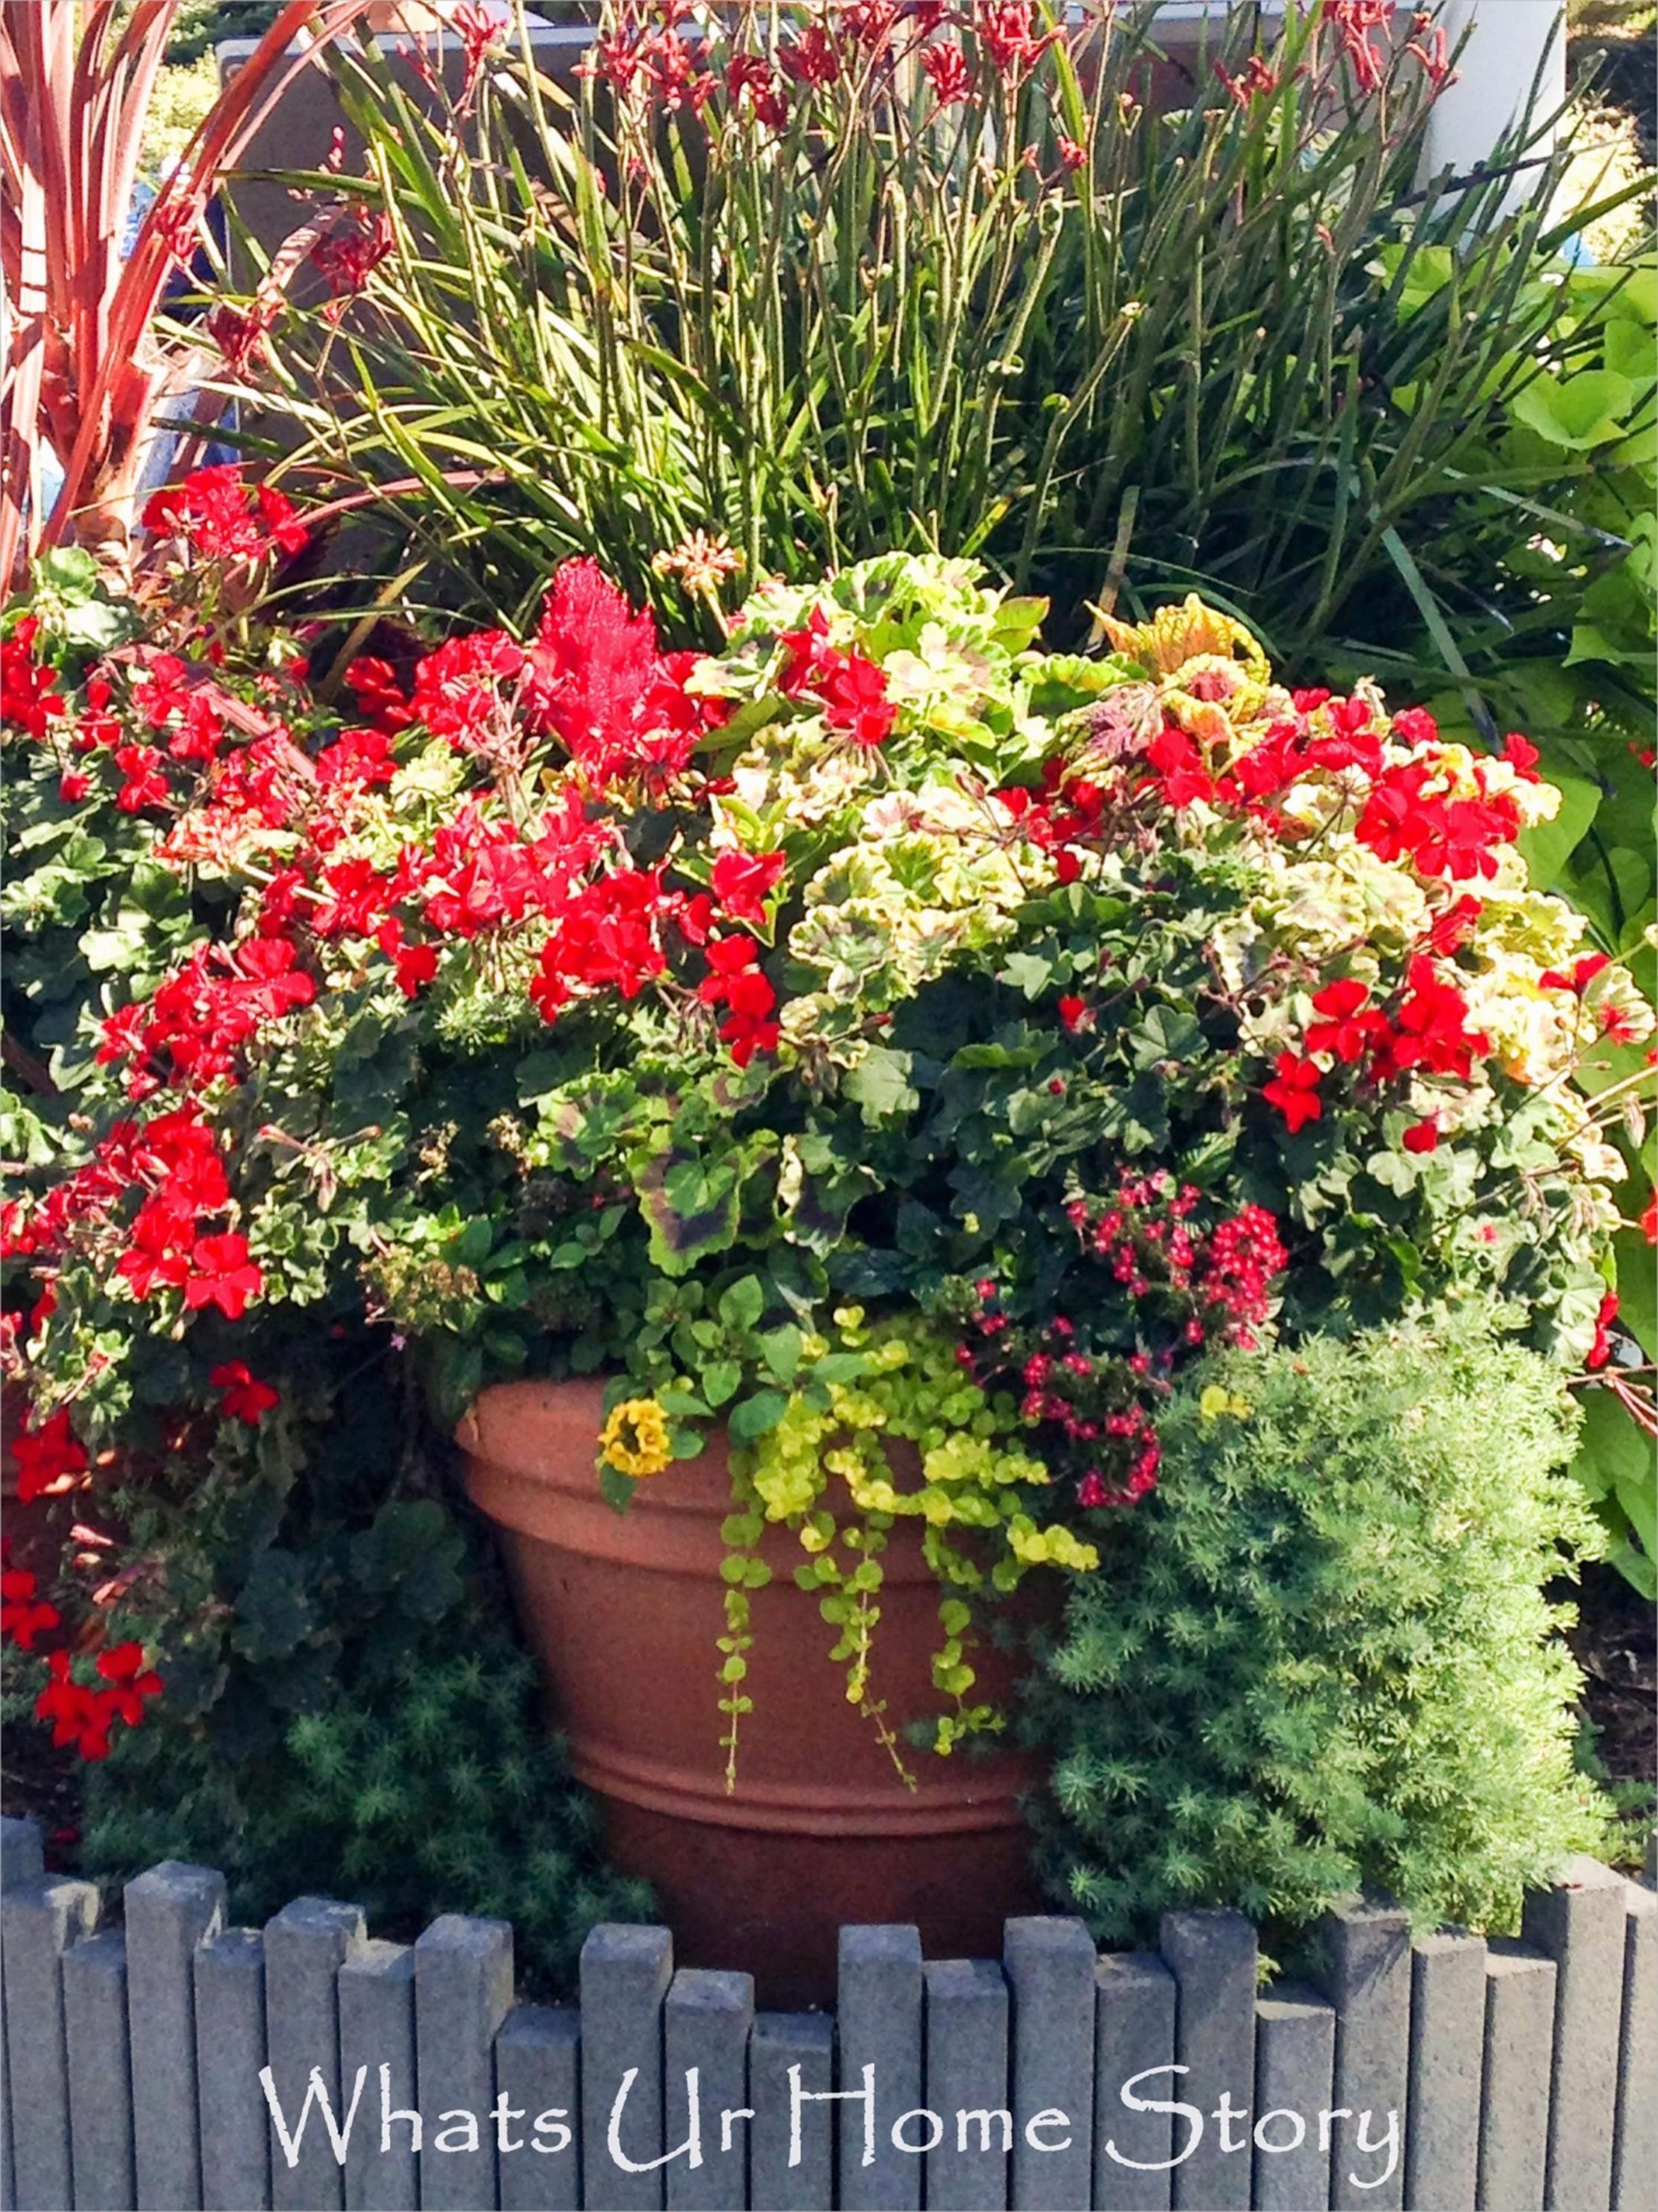 be9334a2c4a646d97c73fe3d8f819f3f - Vegetable Combination Ideas For Container Gardens